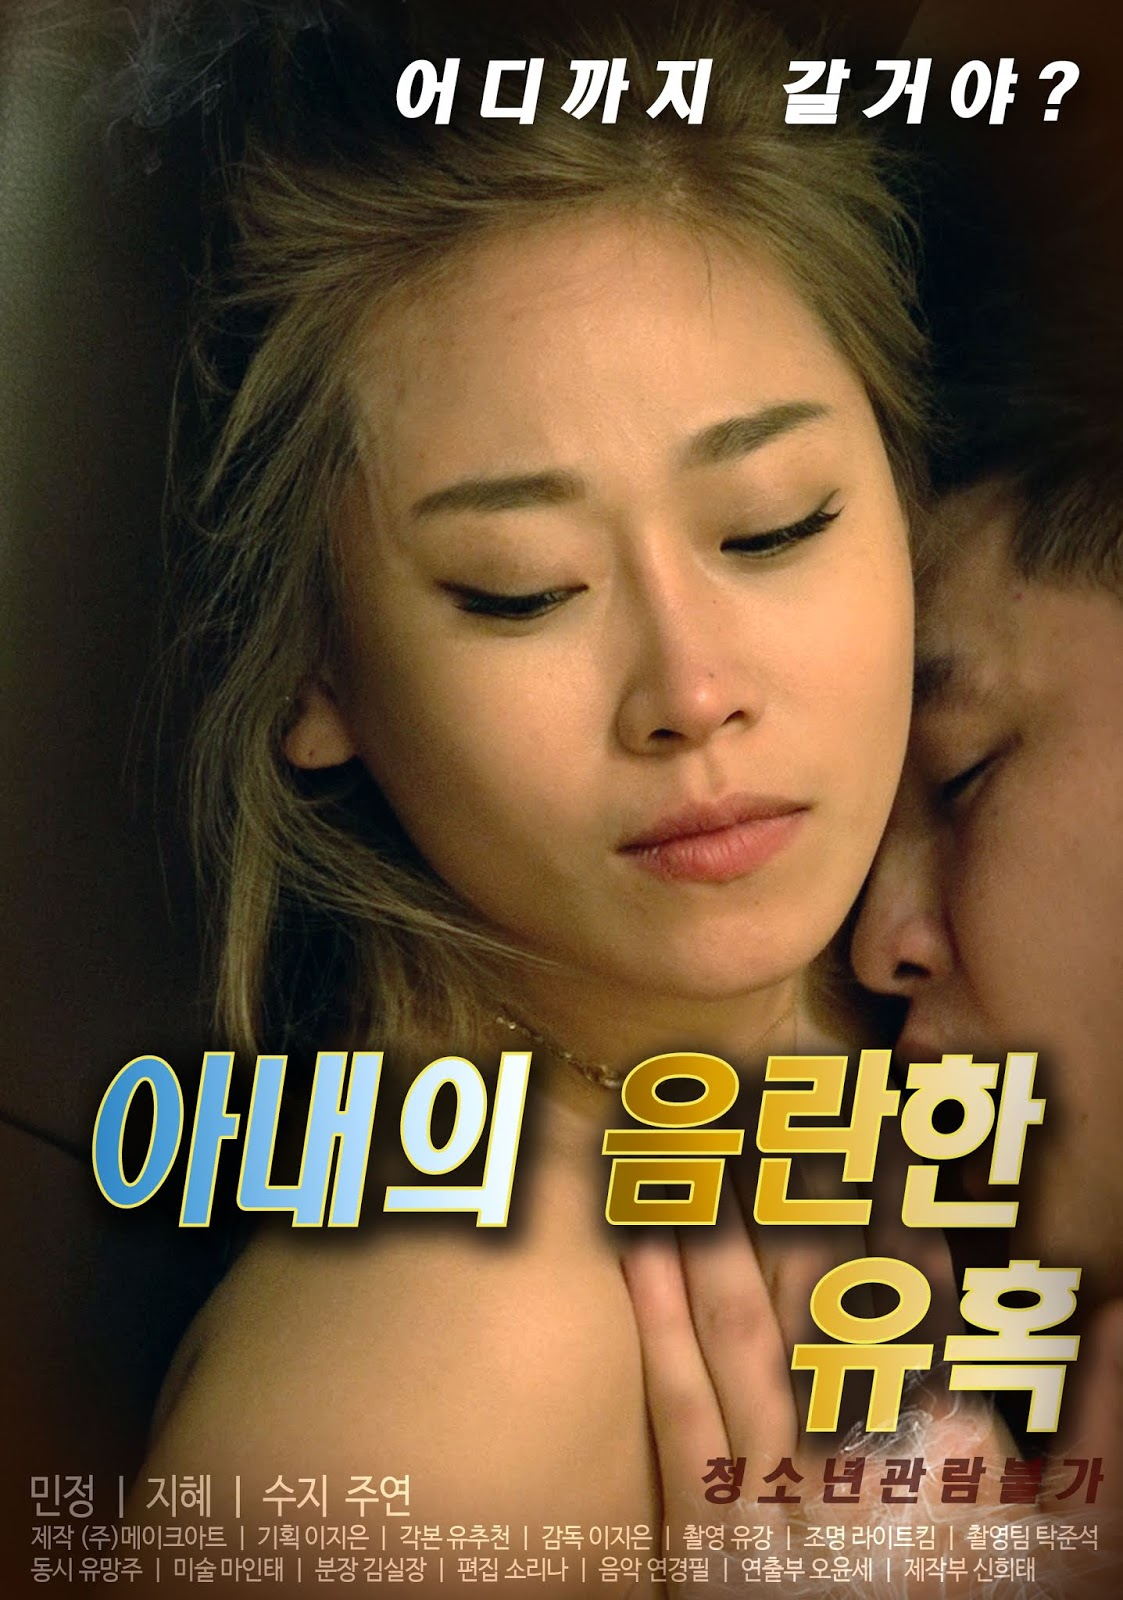 Wifes Sexy Youhock Full Korea 18+ Adult Movie Online Free